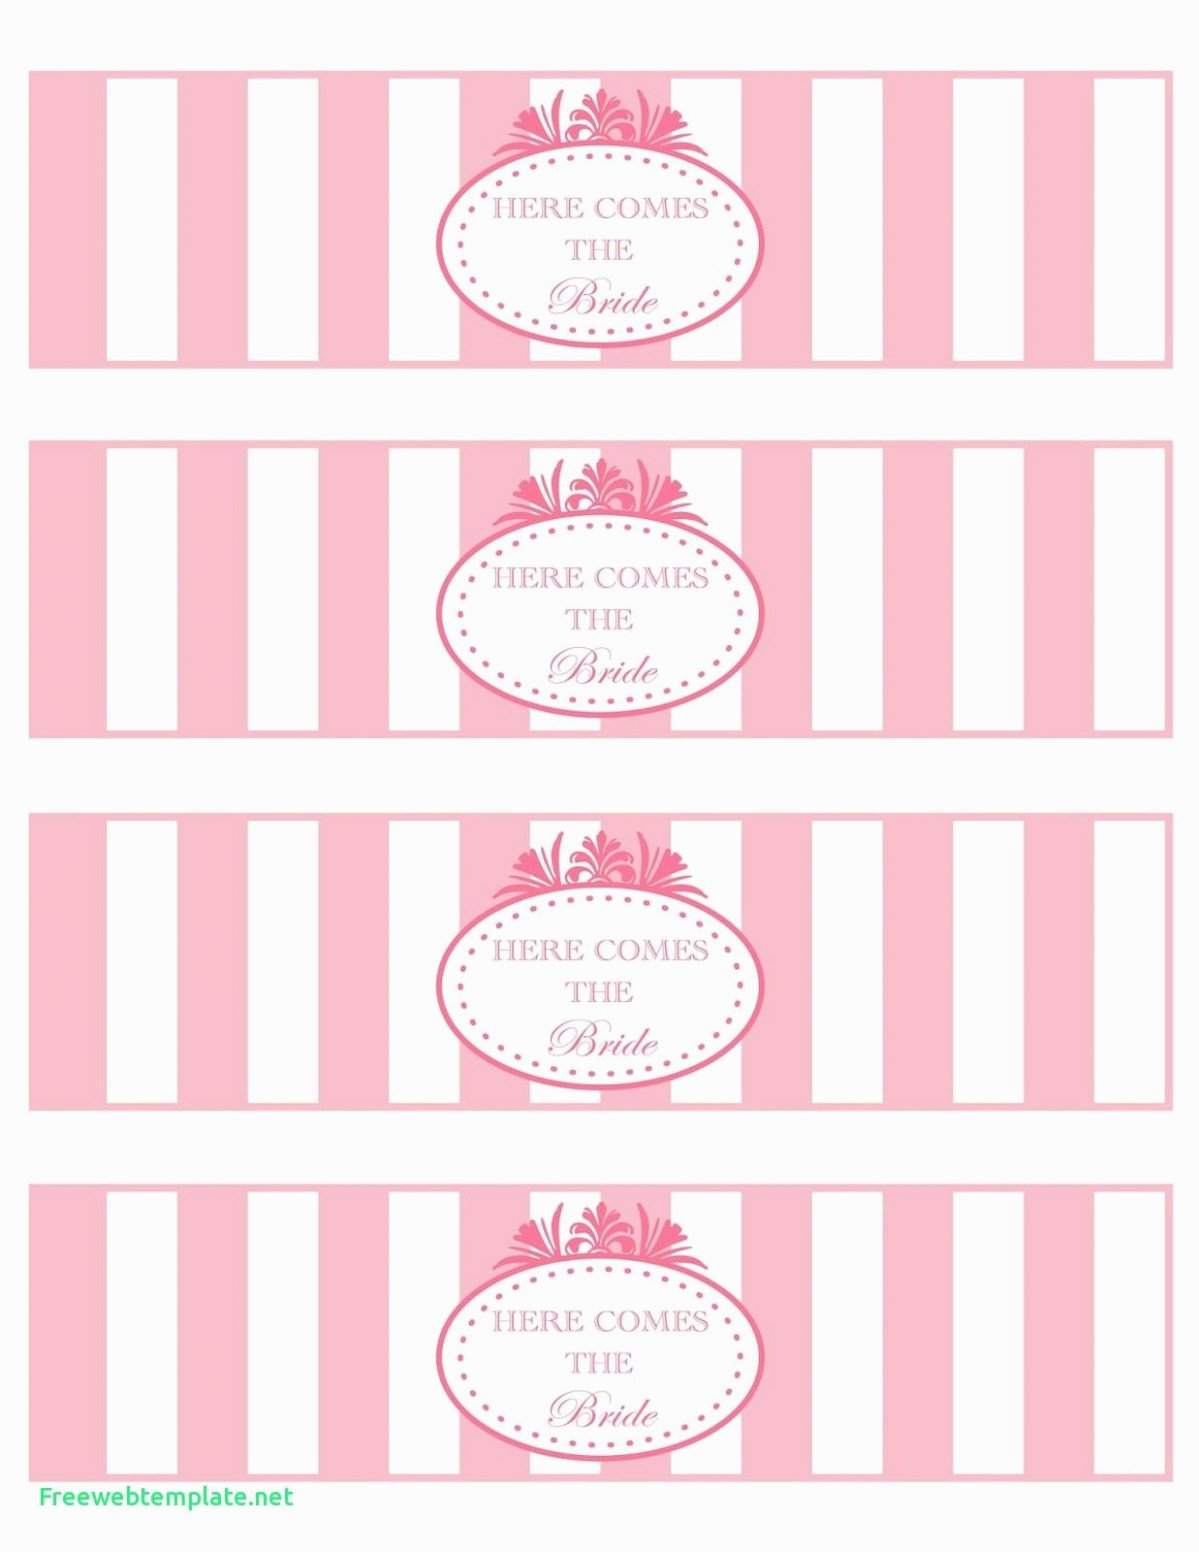 Water Bottle Template Printable Lovely 14 Free Printable Water Bottle